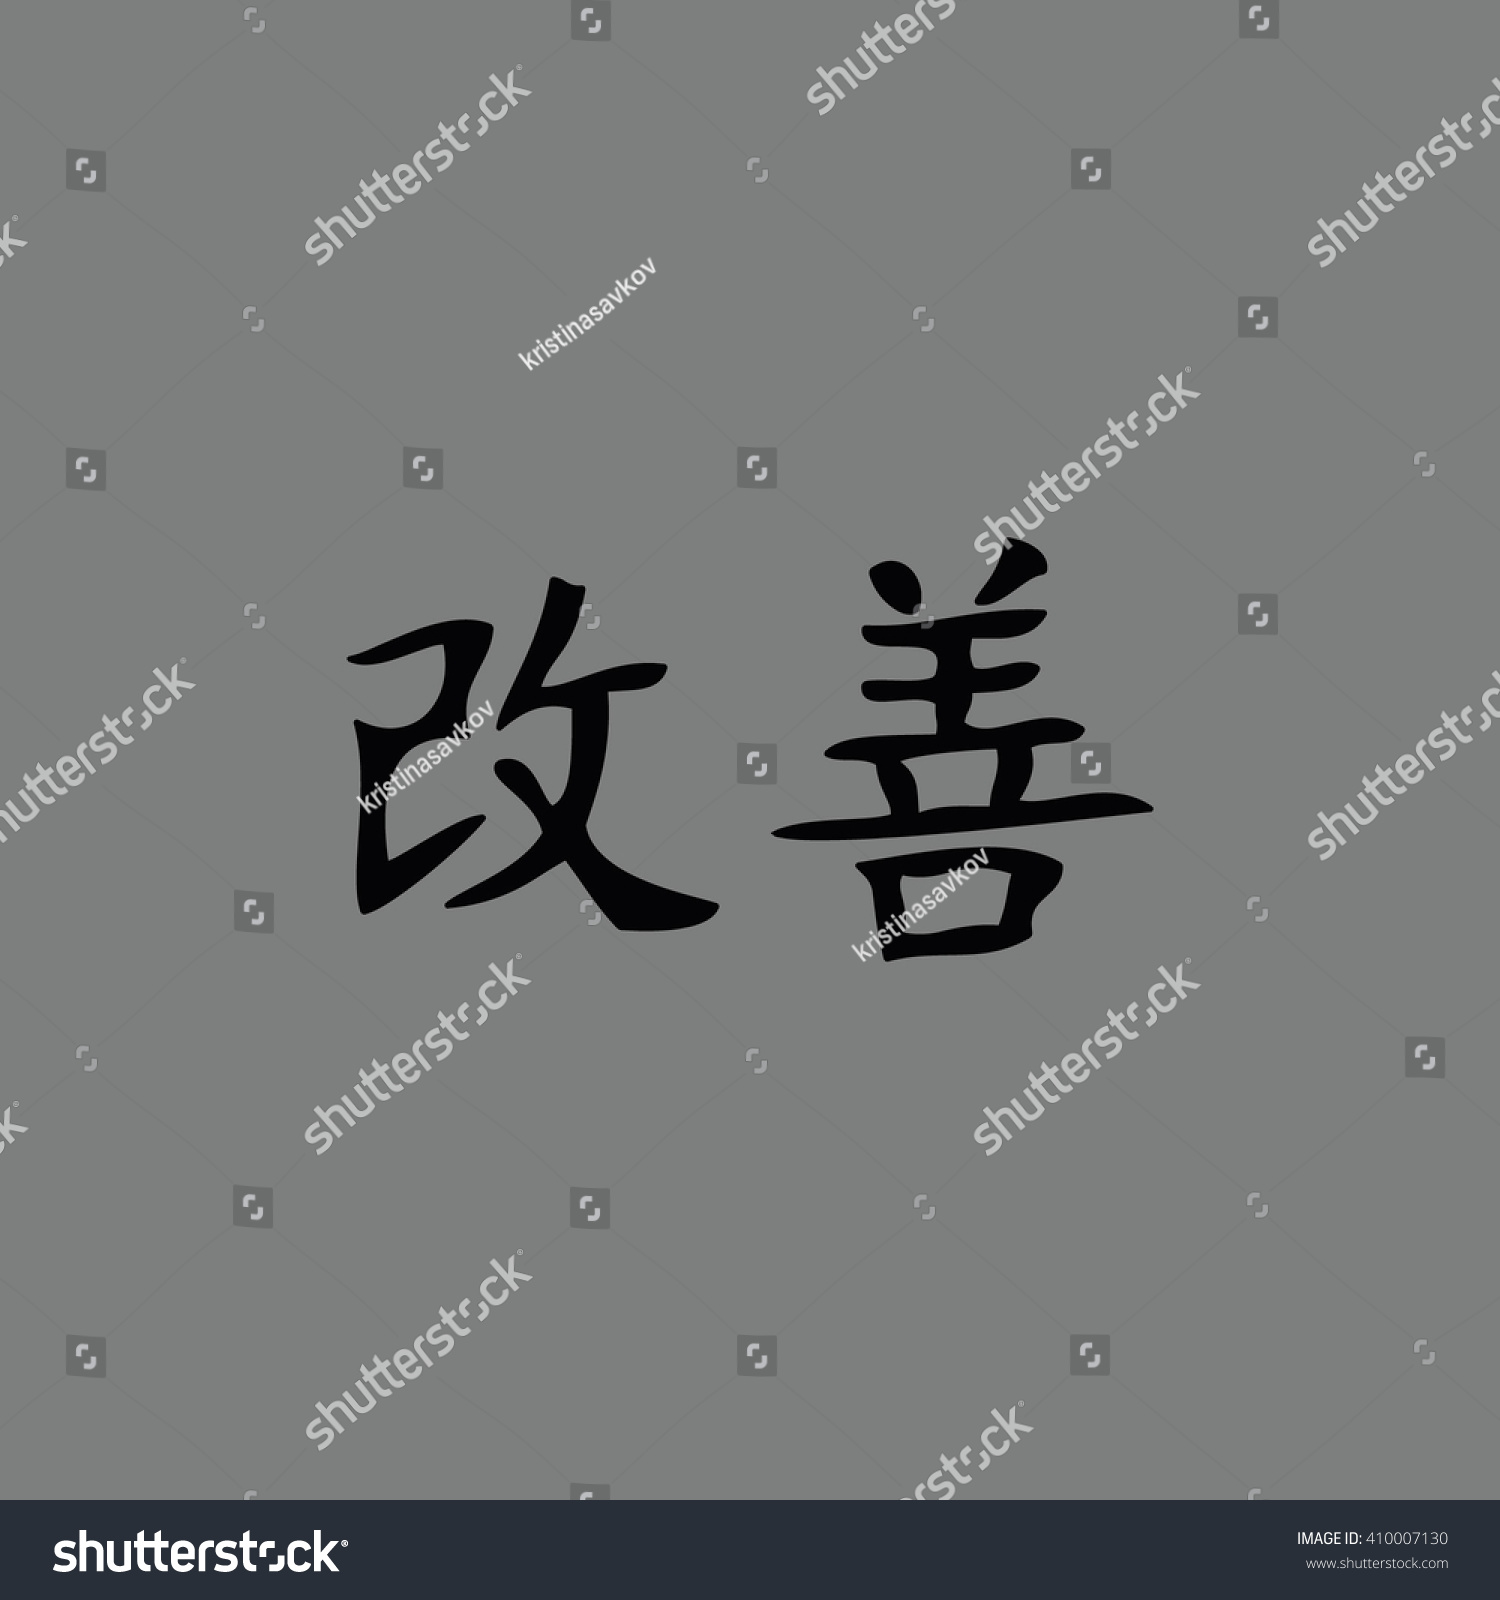 Black Japanese Symbol Improvement Kaizen Vector Stock Vector